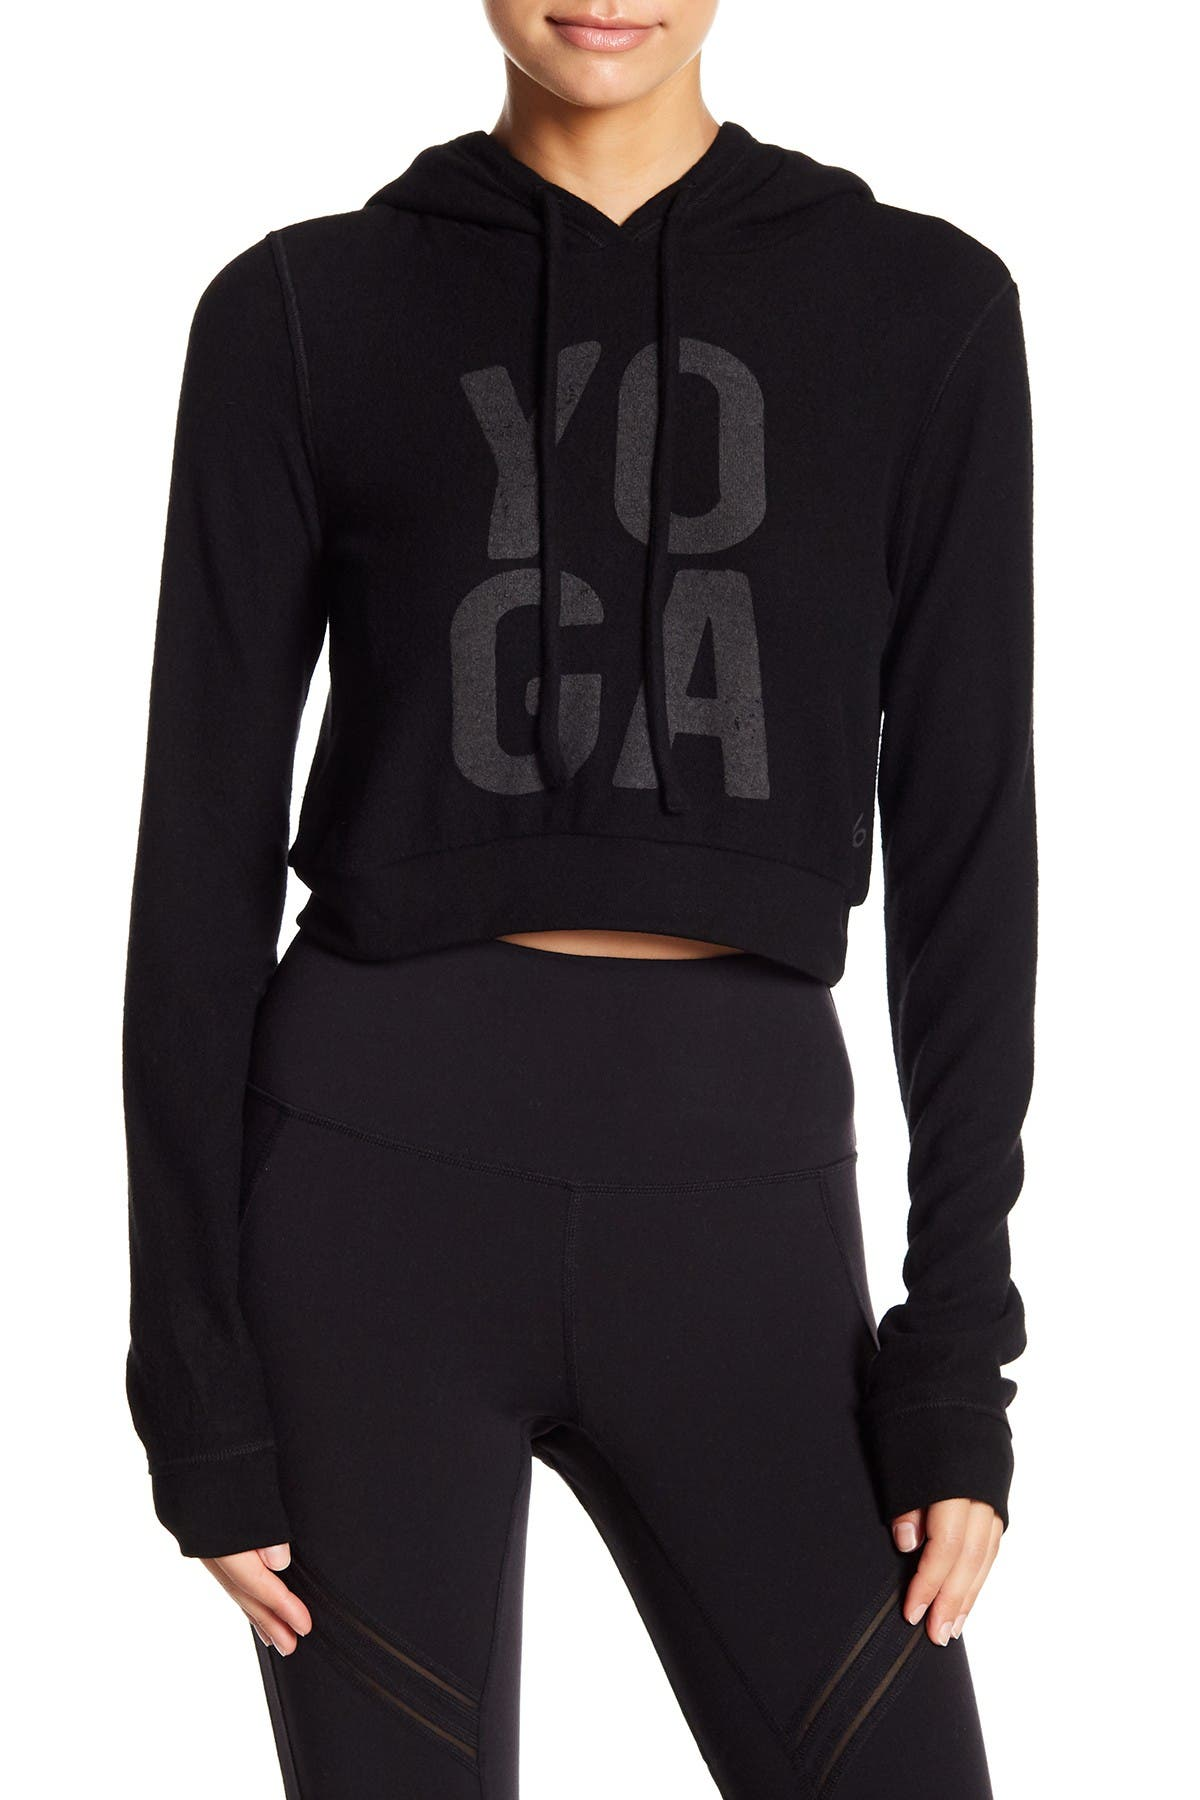 Alo Yoga Womens Jersey Cropped Hoodie